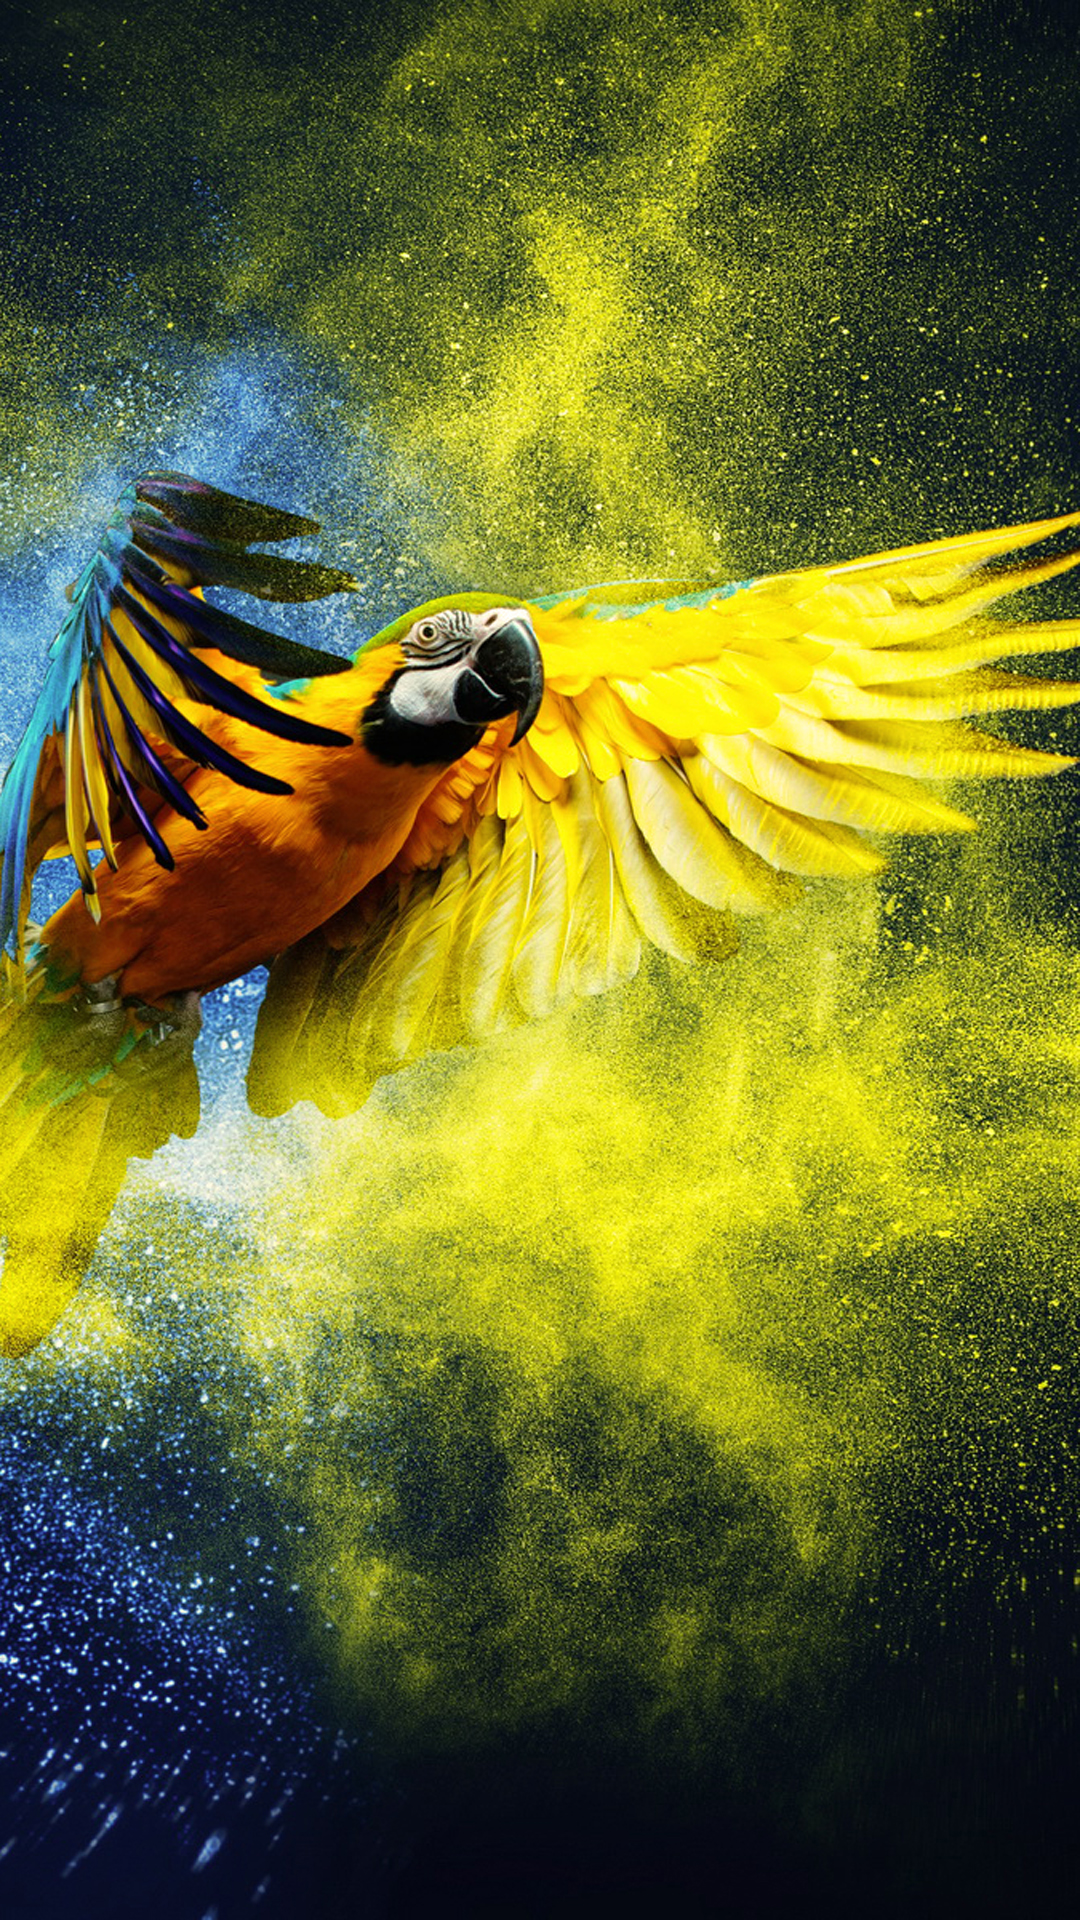 iPhone wallpaper parrot yellow Parrot